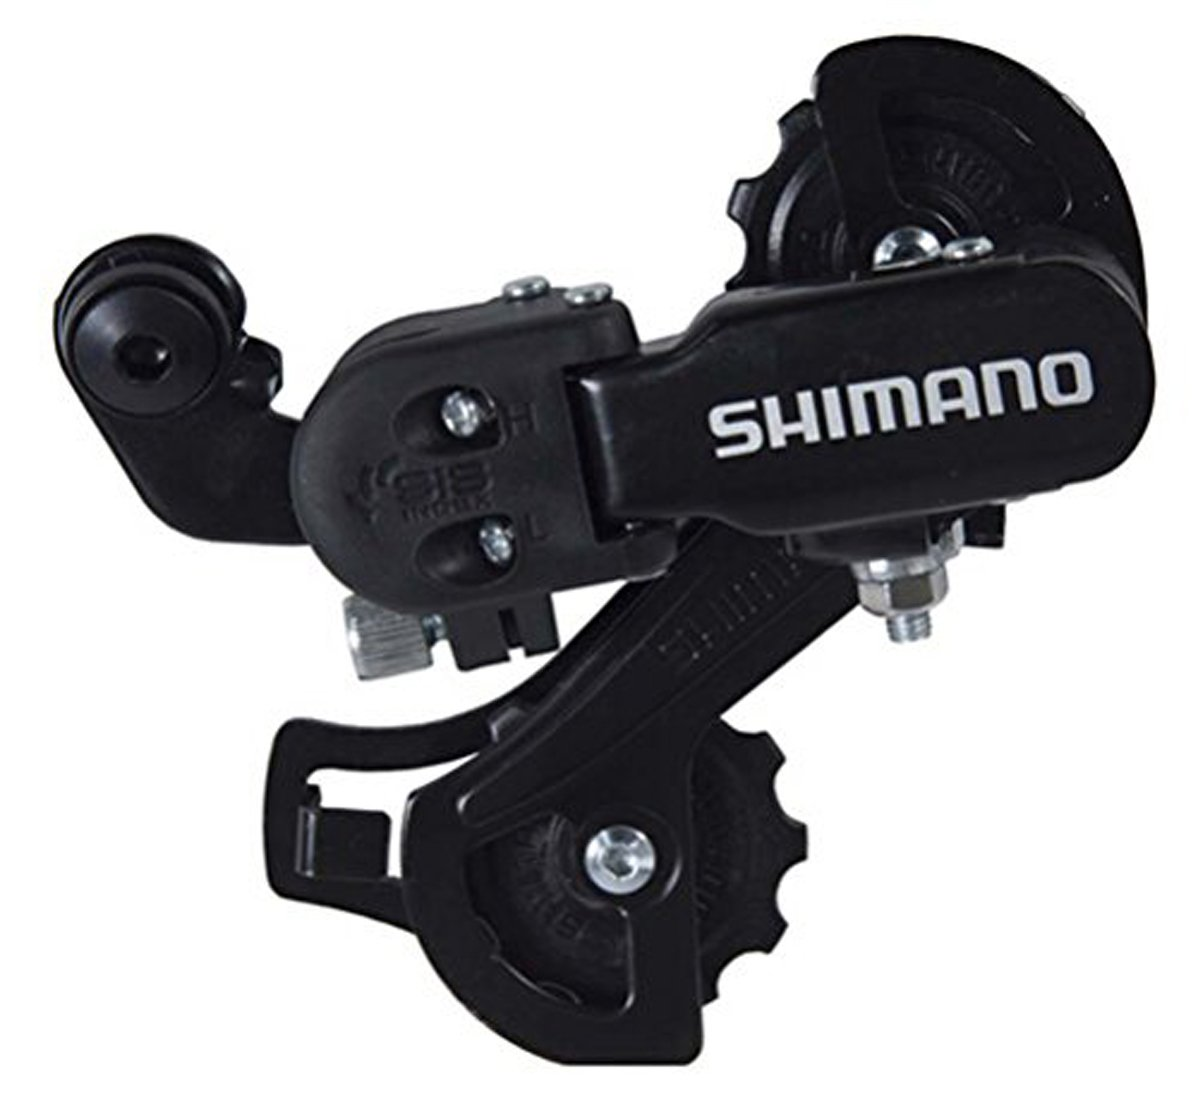 Shimano Rd Tz31 Rear Derailleurs Direct Mount 6 Speed 7